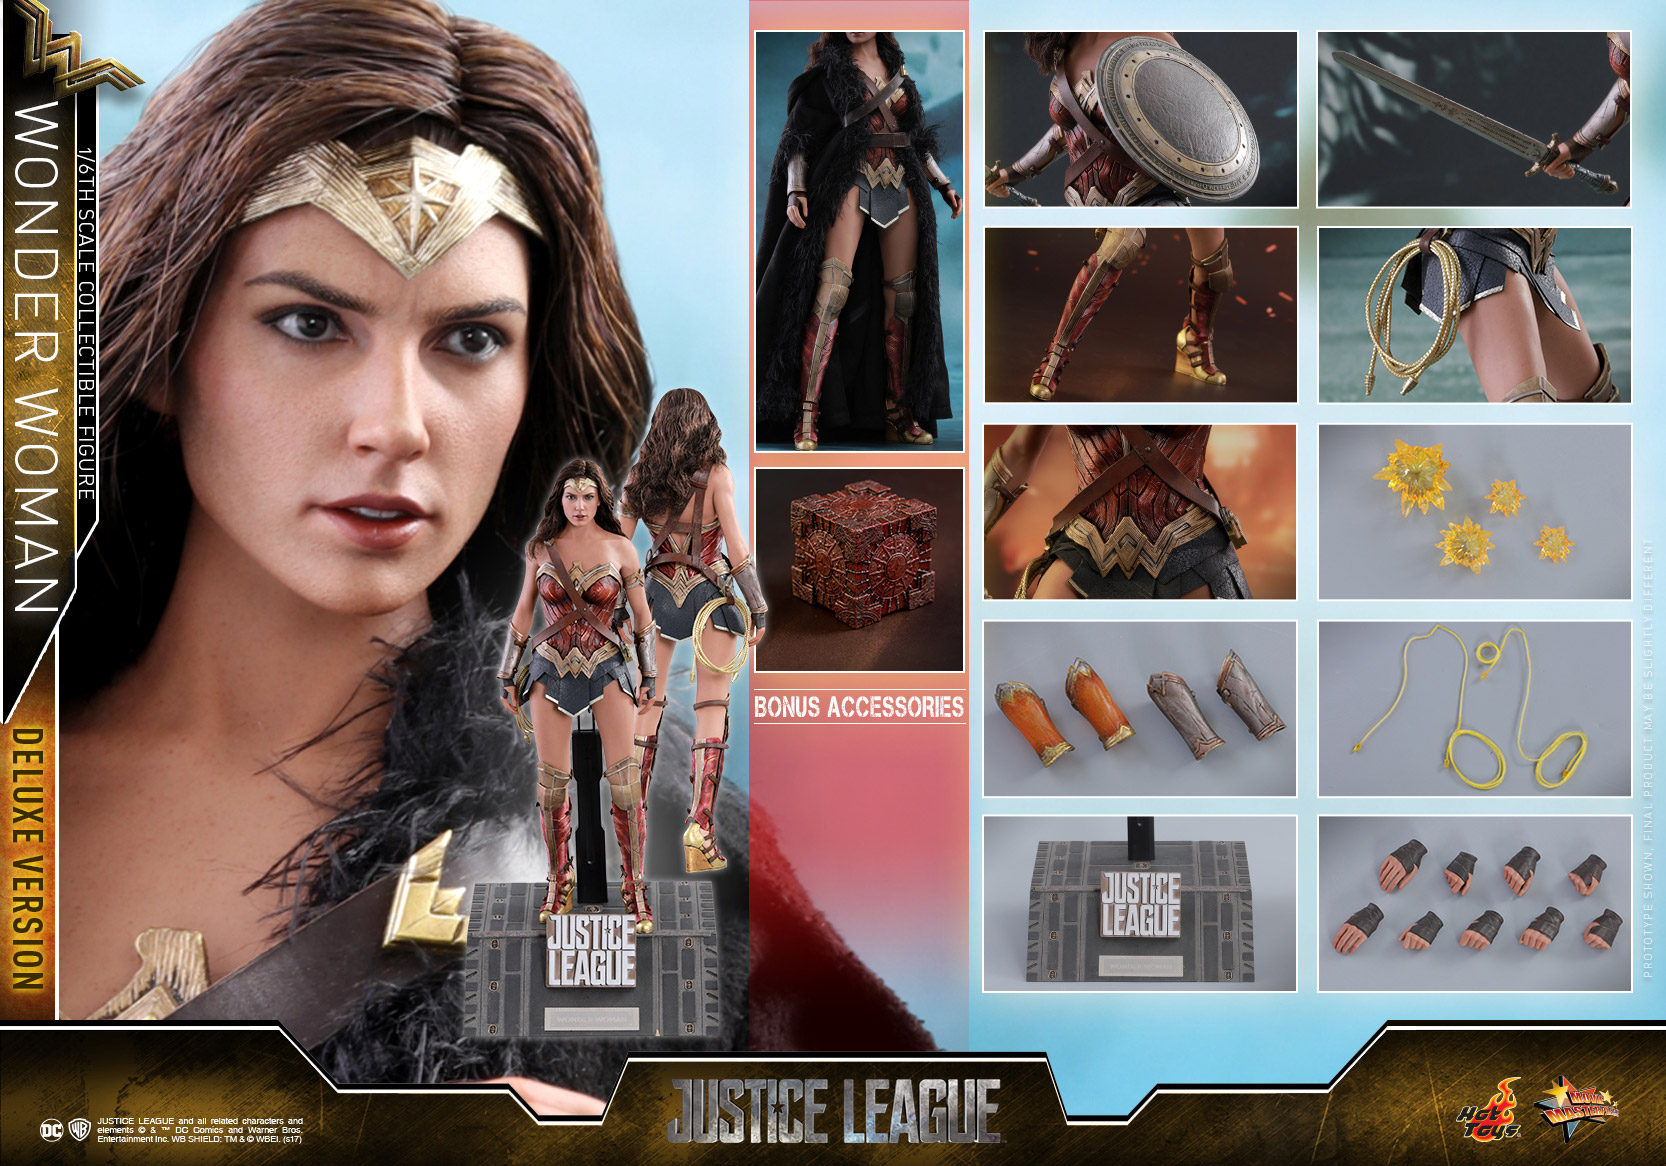 Hot-Toys-Justice-League-Wonder-Woman-collectible-figure-Deluxe_PR-26.jpg